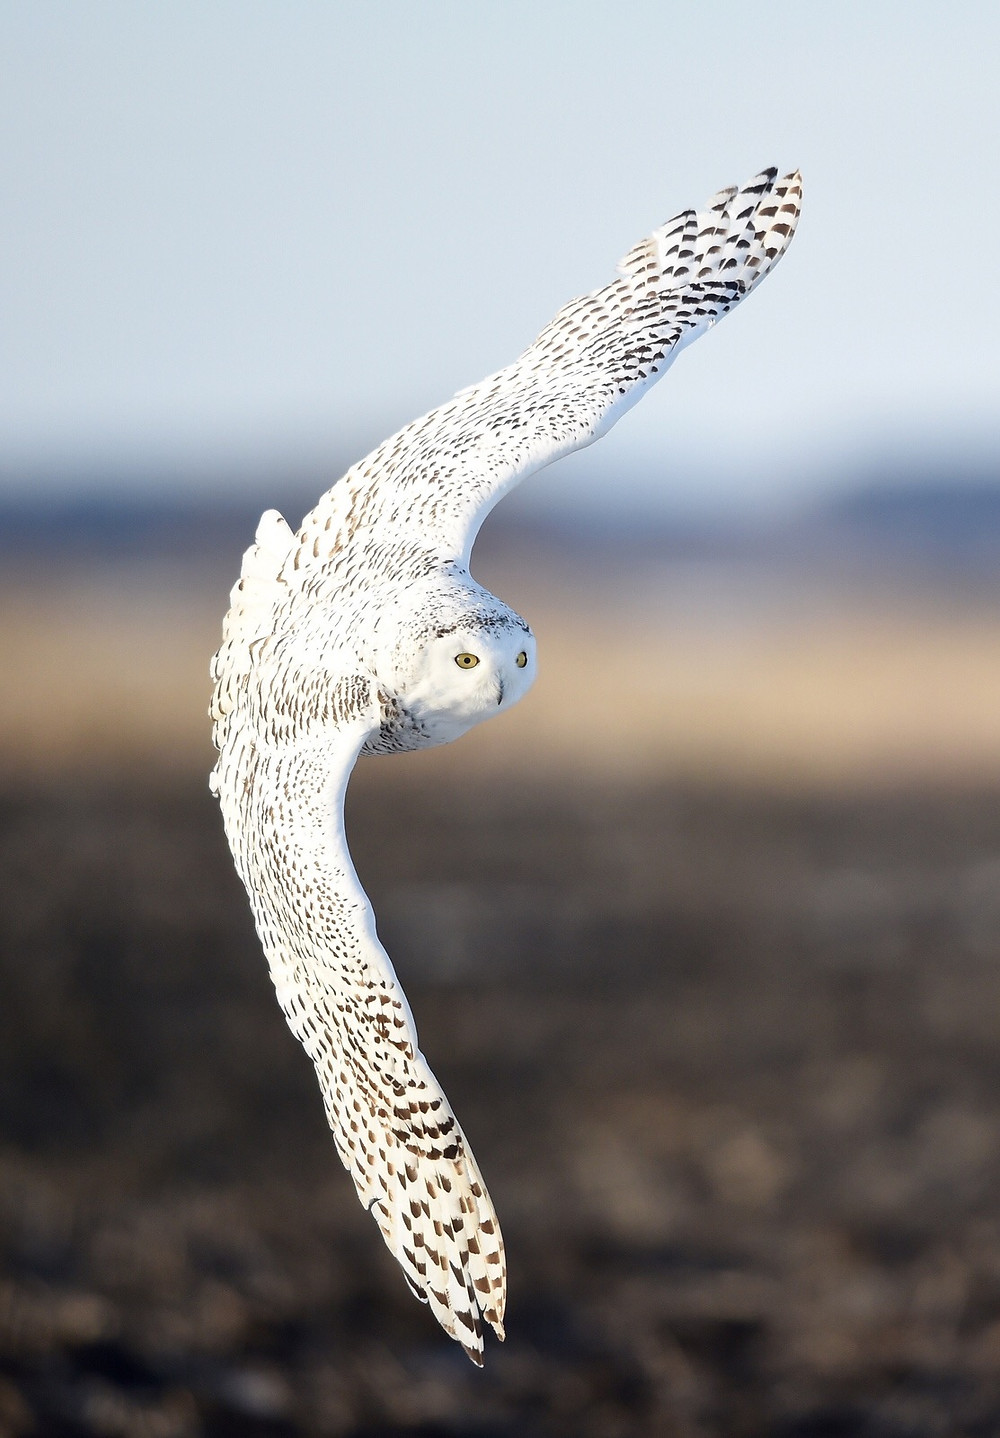 Snowy Owl migration, Kurt Lindsay photo